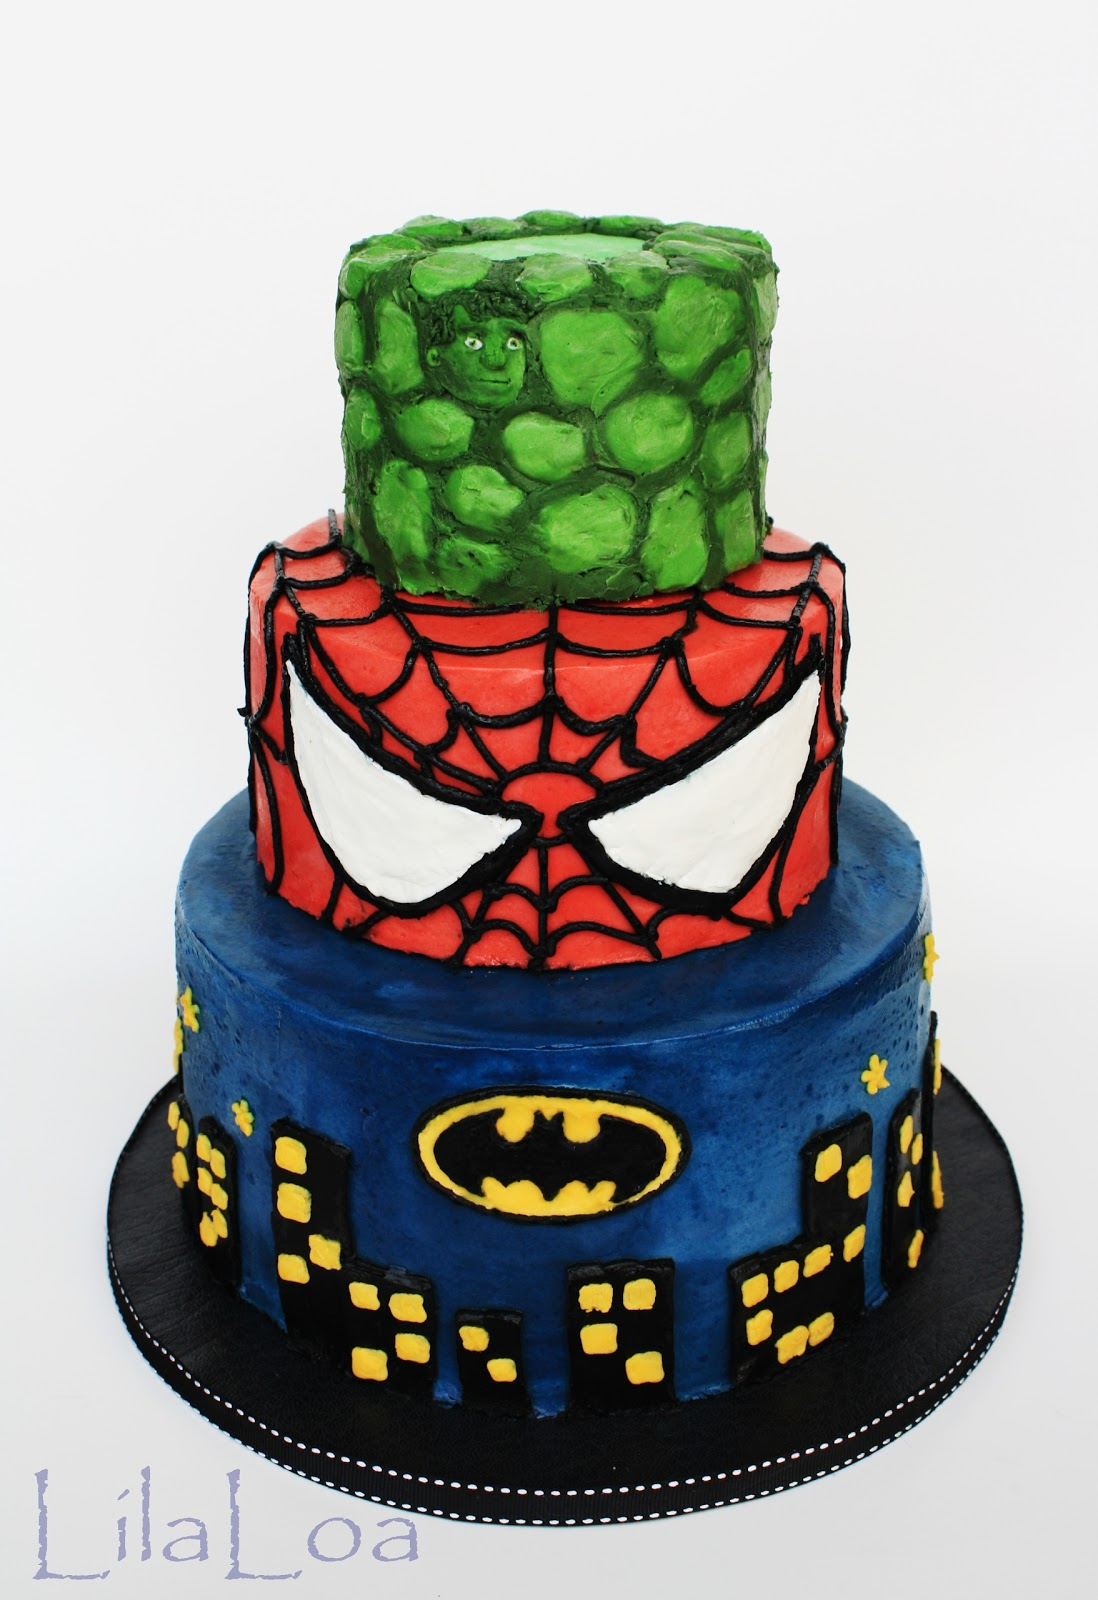 Here is the obvious superhero part of the cake. At least, I hope it39;s